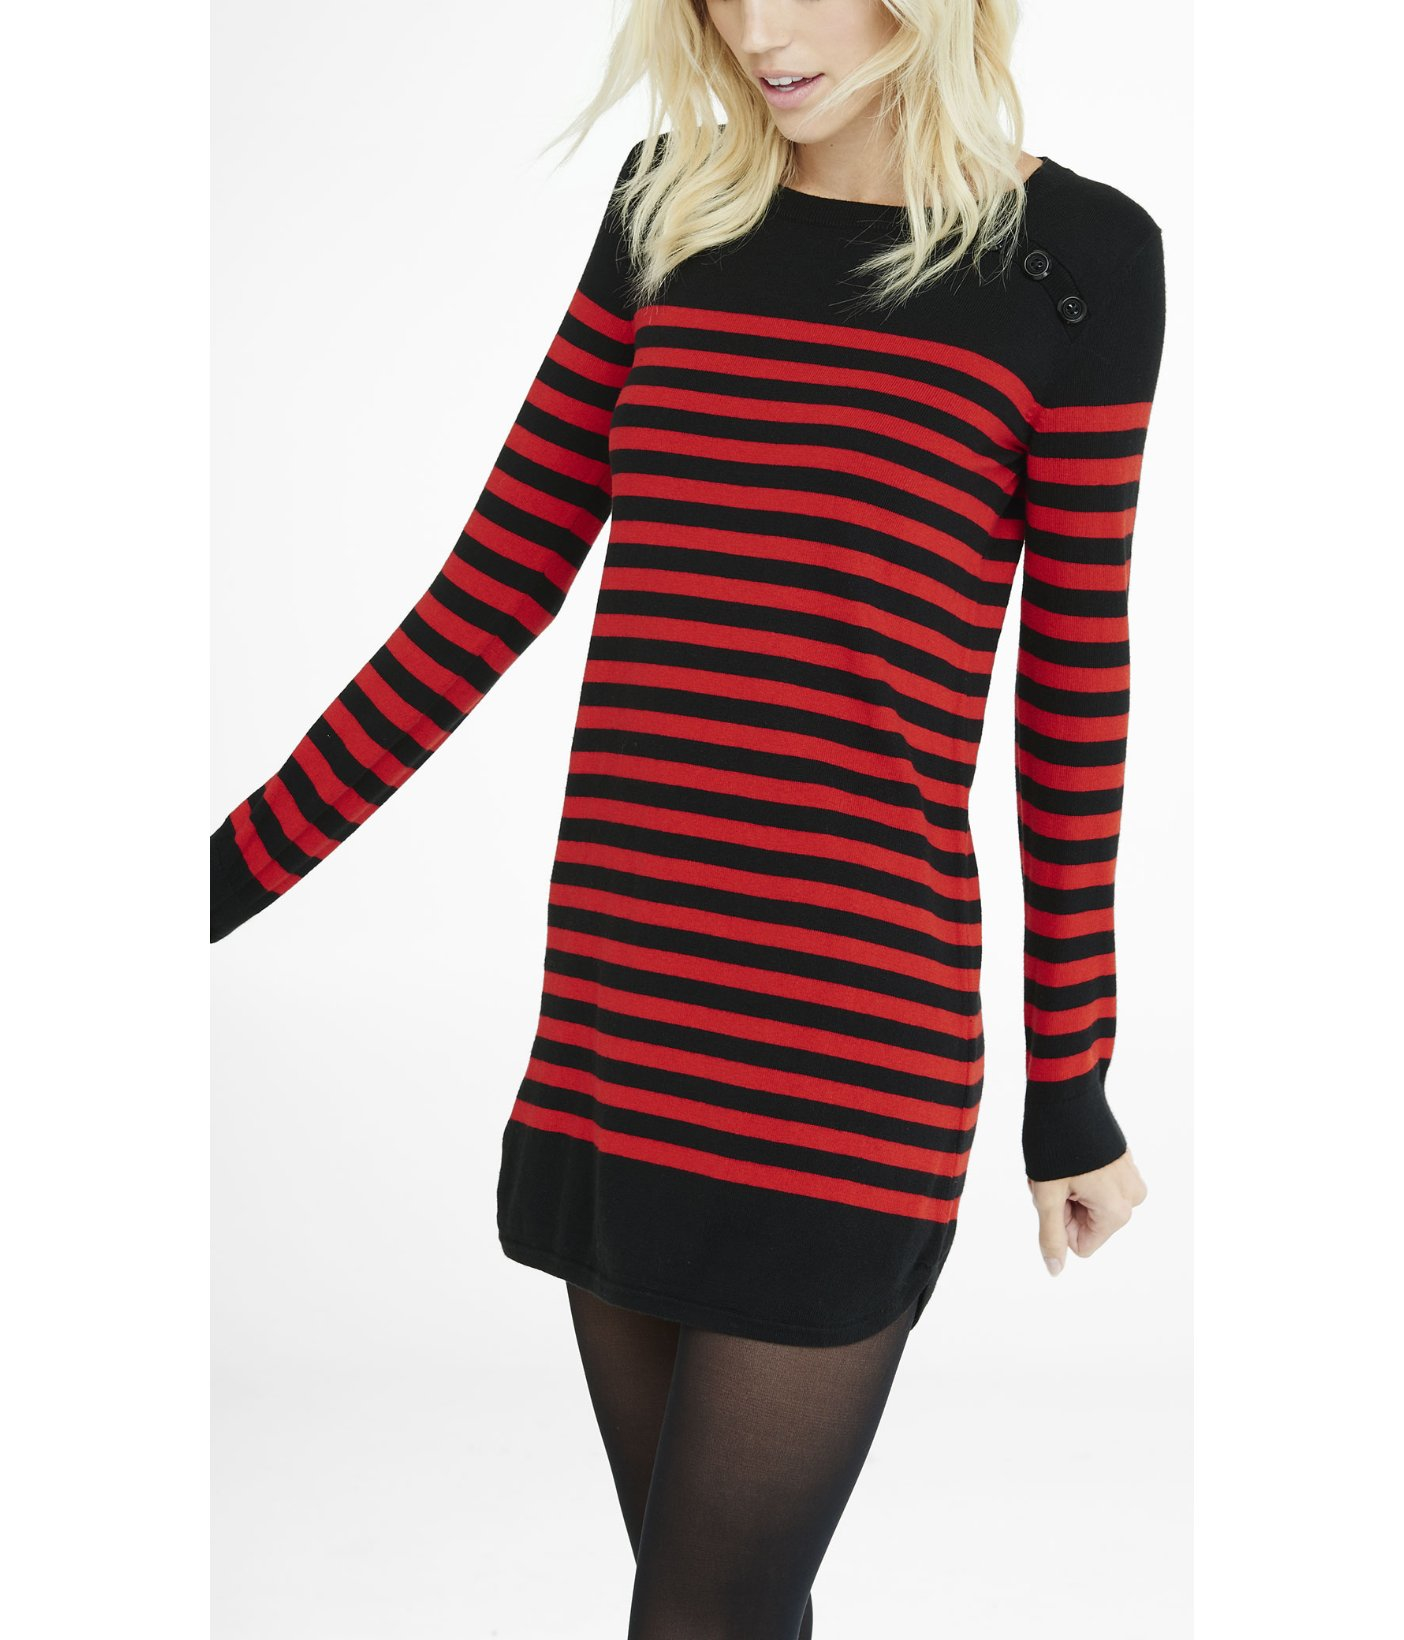 1373d71475 Lyst - Express Black And Red Striped Sweater Dress in Black